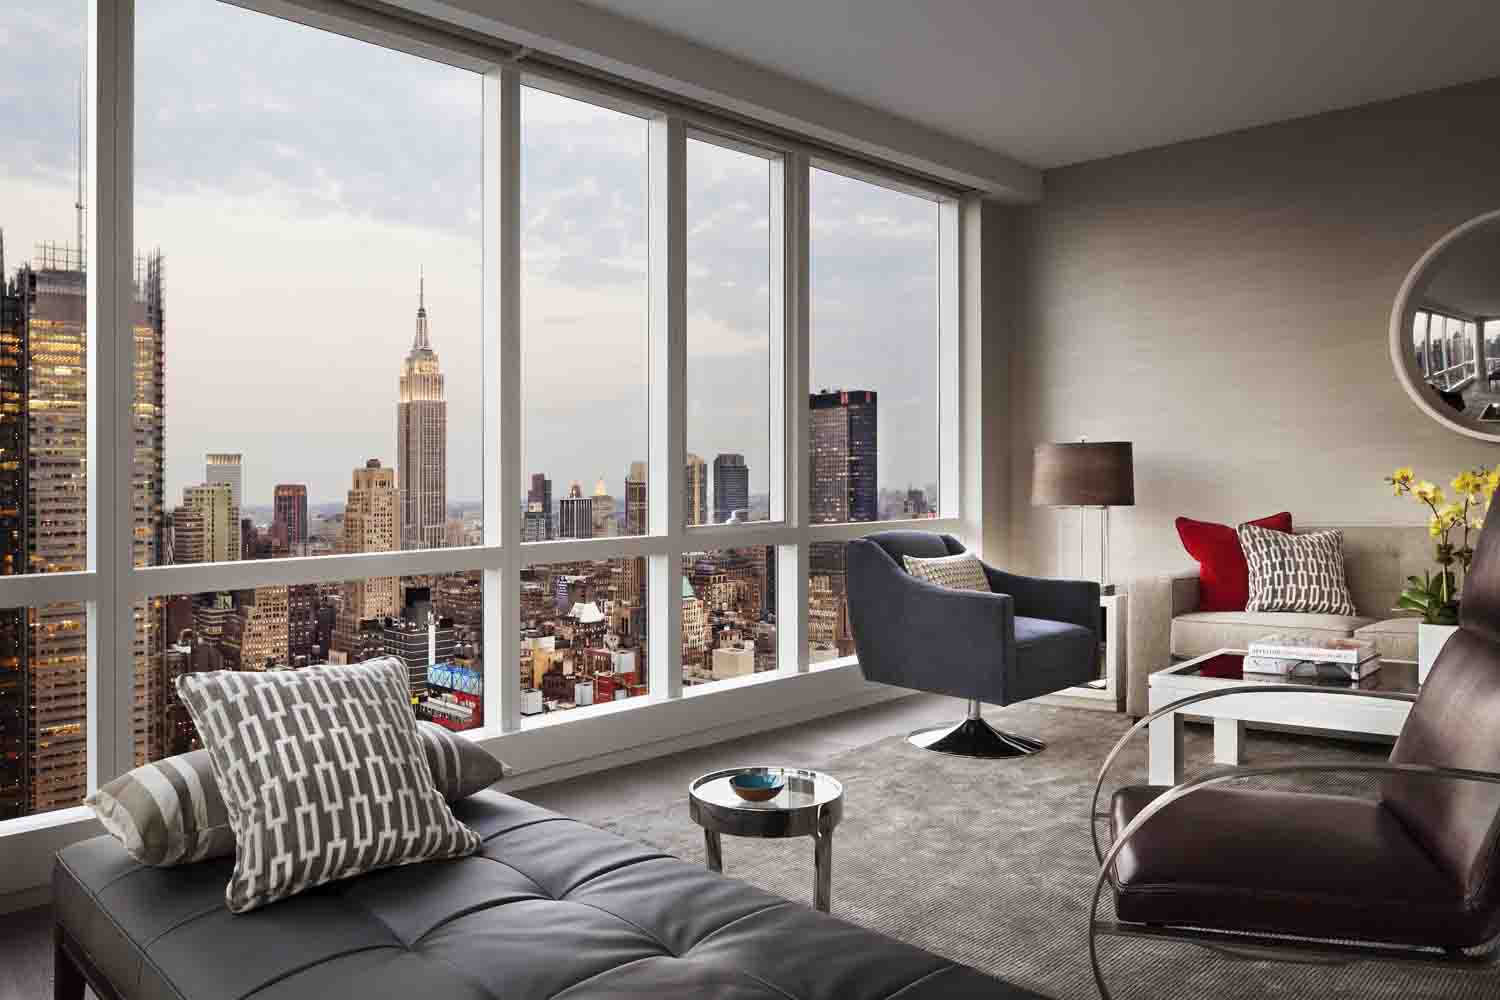 13 Stunning Apartments In New York: Manhattan Luxury Rental Apartments